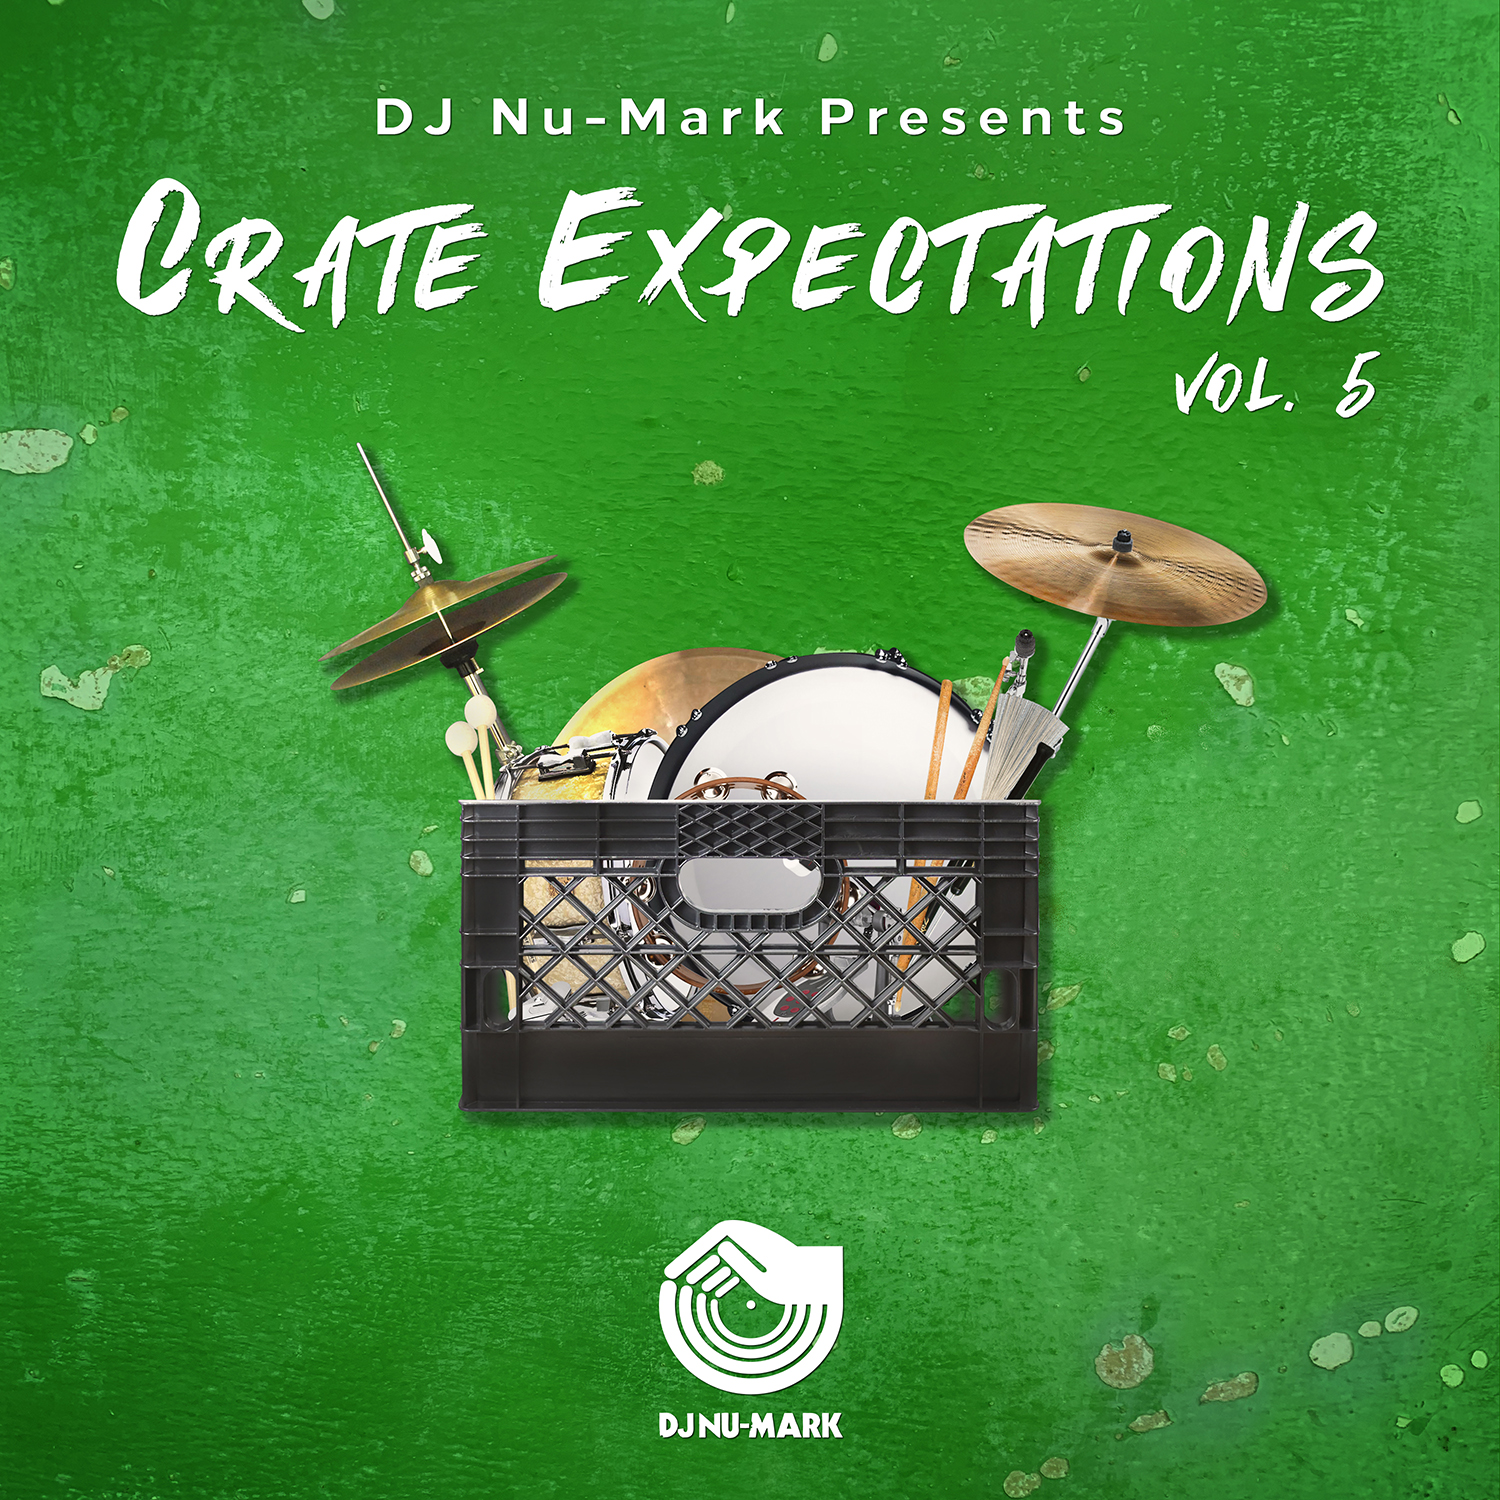 Crate Expectations Vol. 5